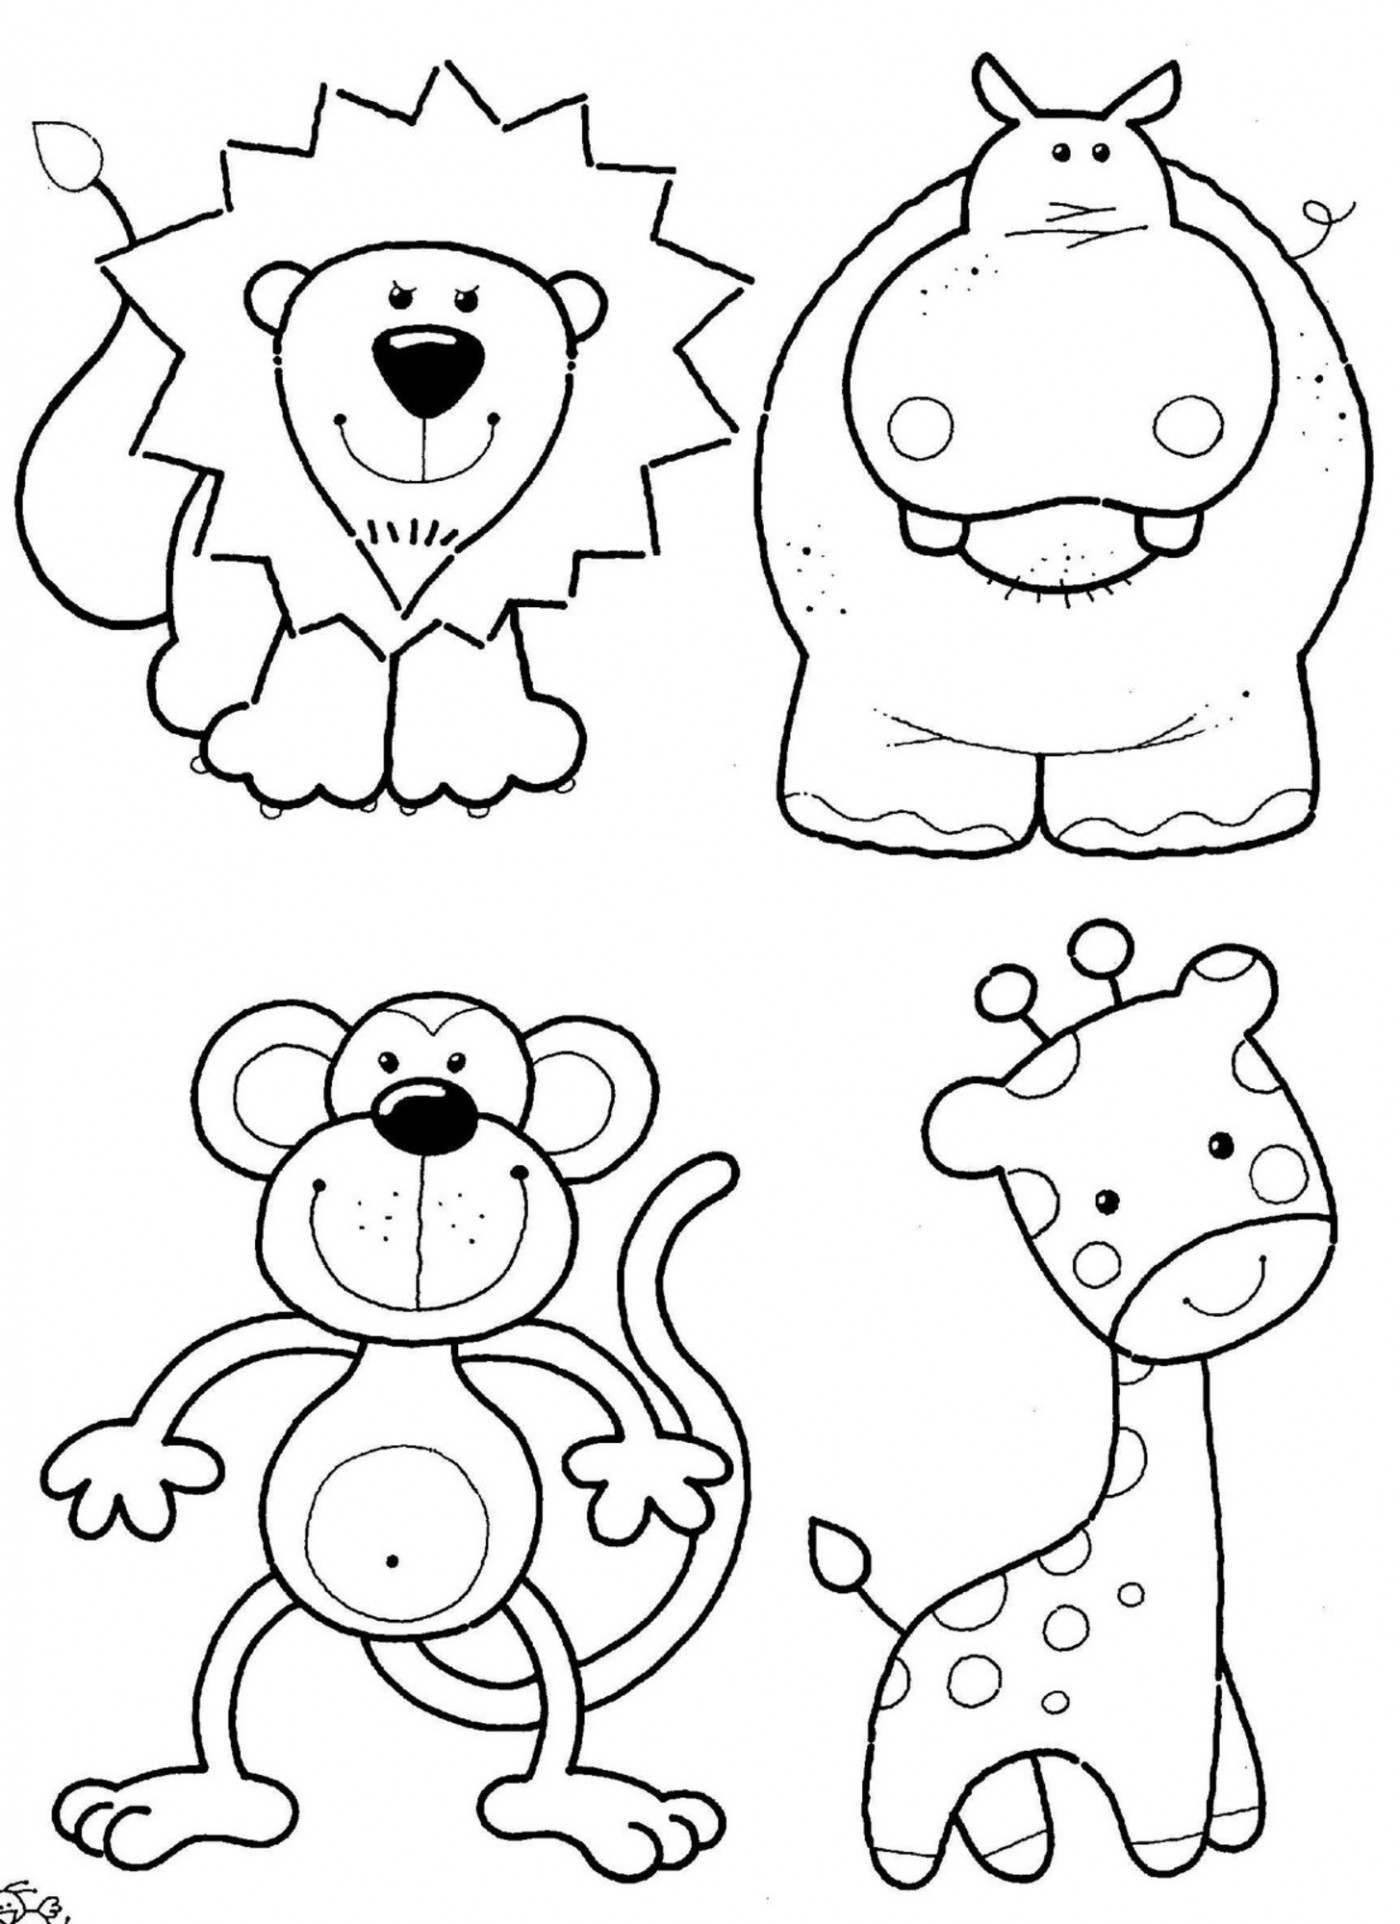 animals free printable coloring pages - photo#16